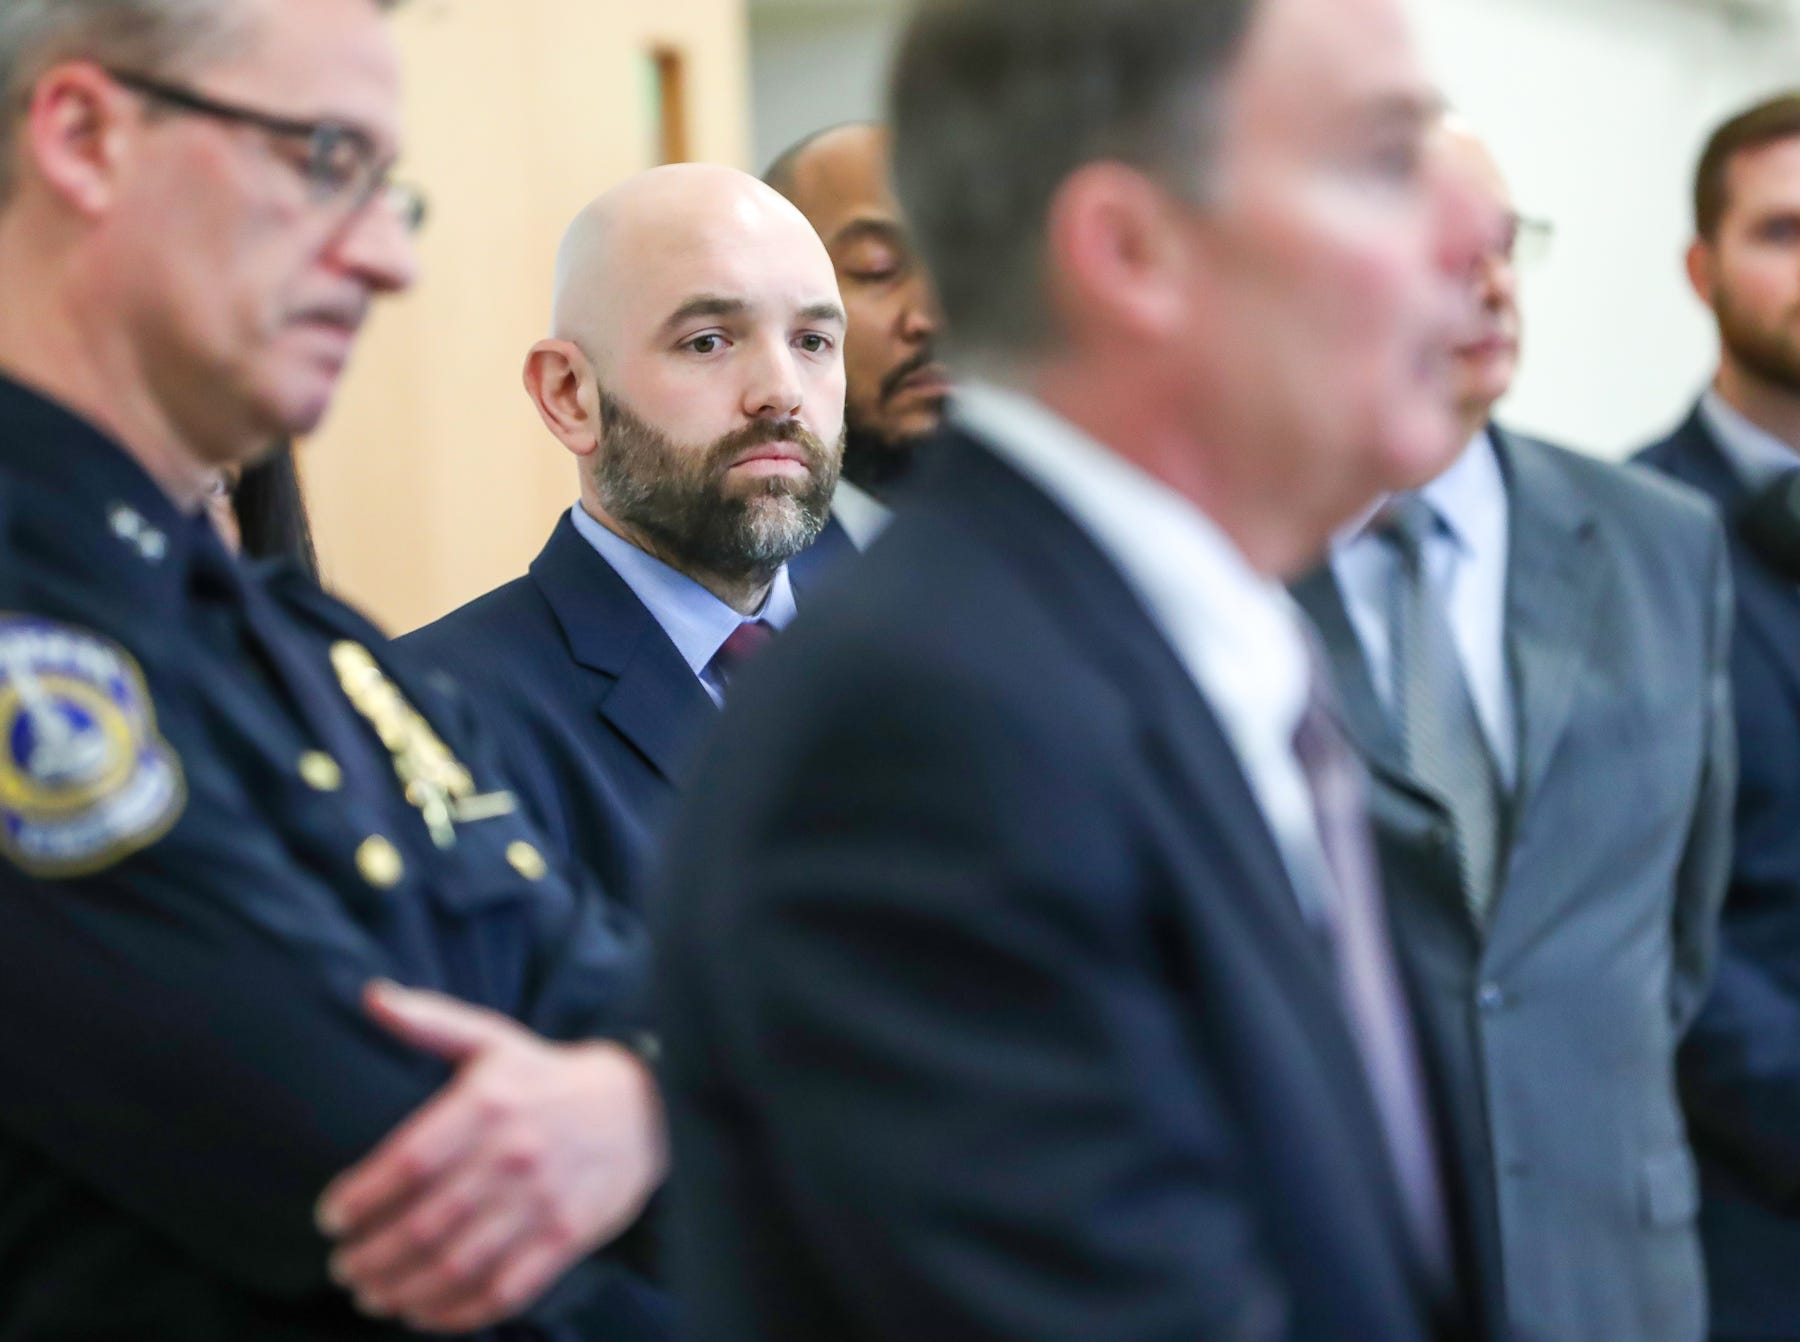 """Jeremy Carter (middle left), director of criminal justice and public safety and associate professor in the School of Public and Environmental Affairs at IUPUI, listens as Indianapolis Mayor Joe Hogsett speaks about a new program to equip IMPD officers with body worn cameras during press conference at the Edna Martin Christian Center in Indianapolis on Monday, Feb. 4, 2019. """"For year to year operation, we estimate a cost between $2 million and $3 million,"""" Hogsett said. """"Far less than earlier body cam programs would have required."""""""